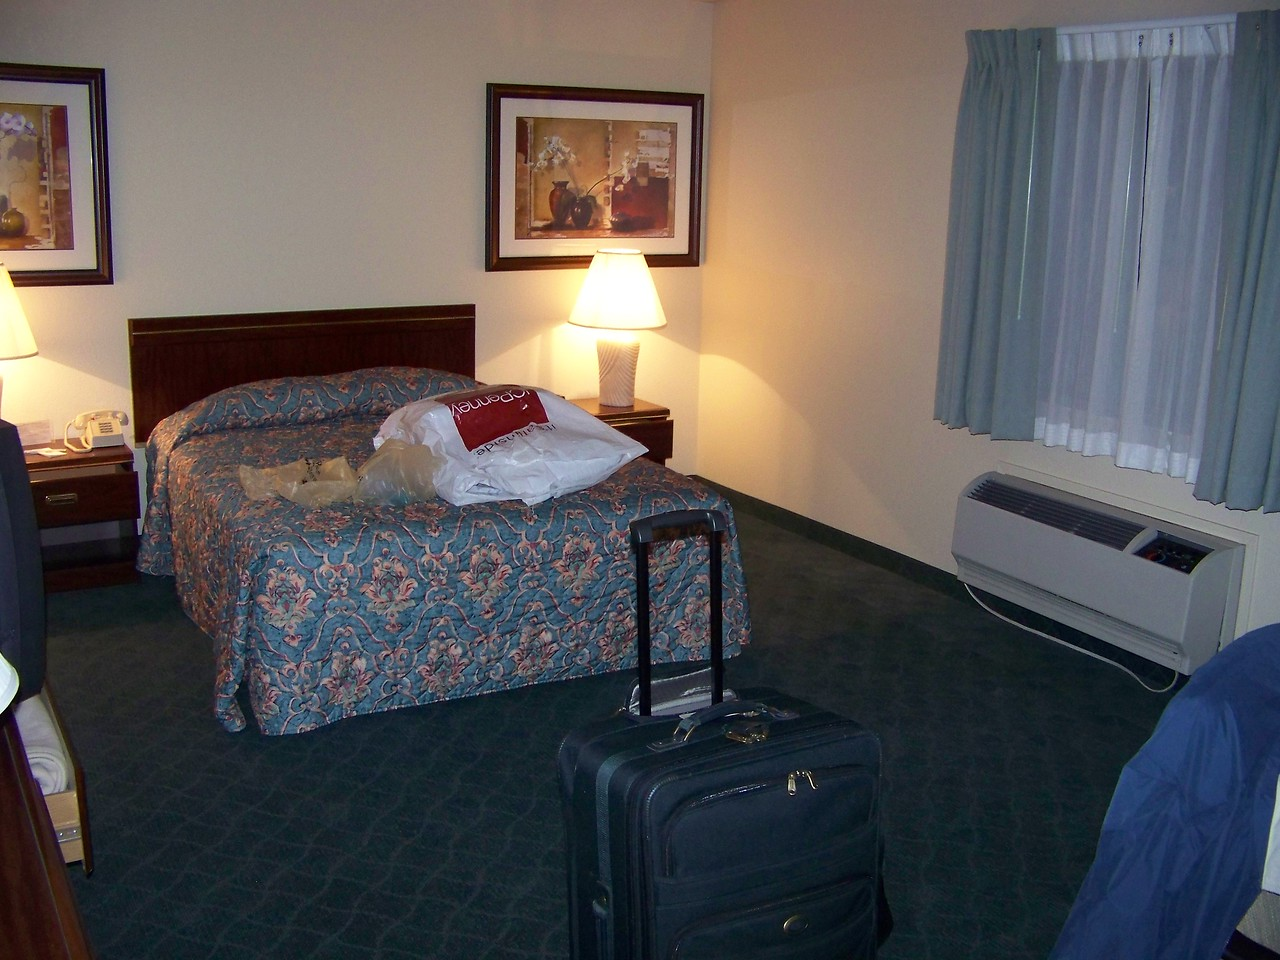 I slept in this room on the other side of the suite.<br /> [On the road to Reno - Best Western Miner's Inn in Yreka, CA]